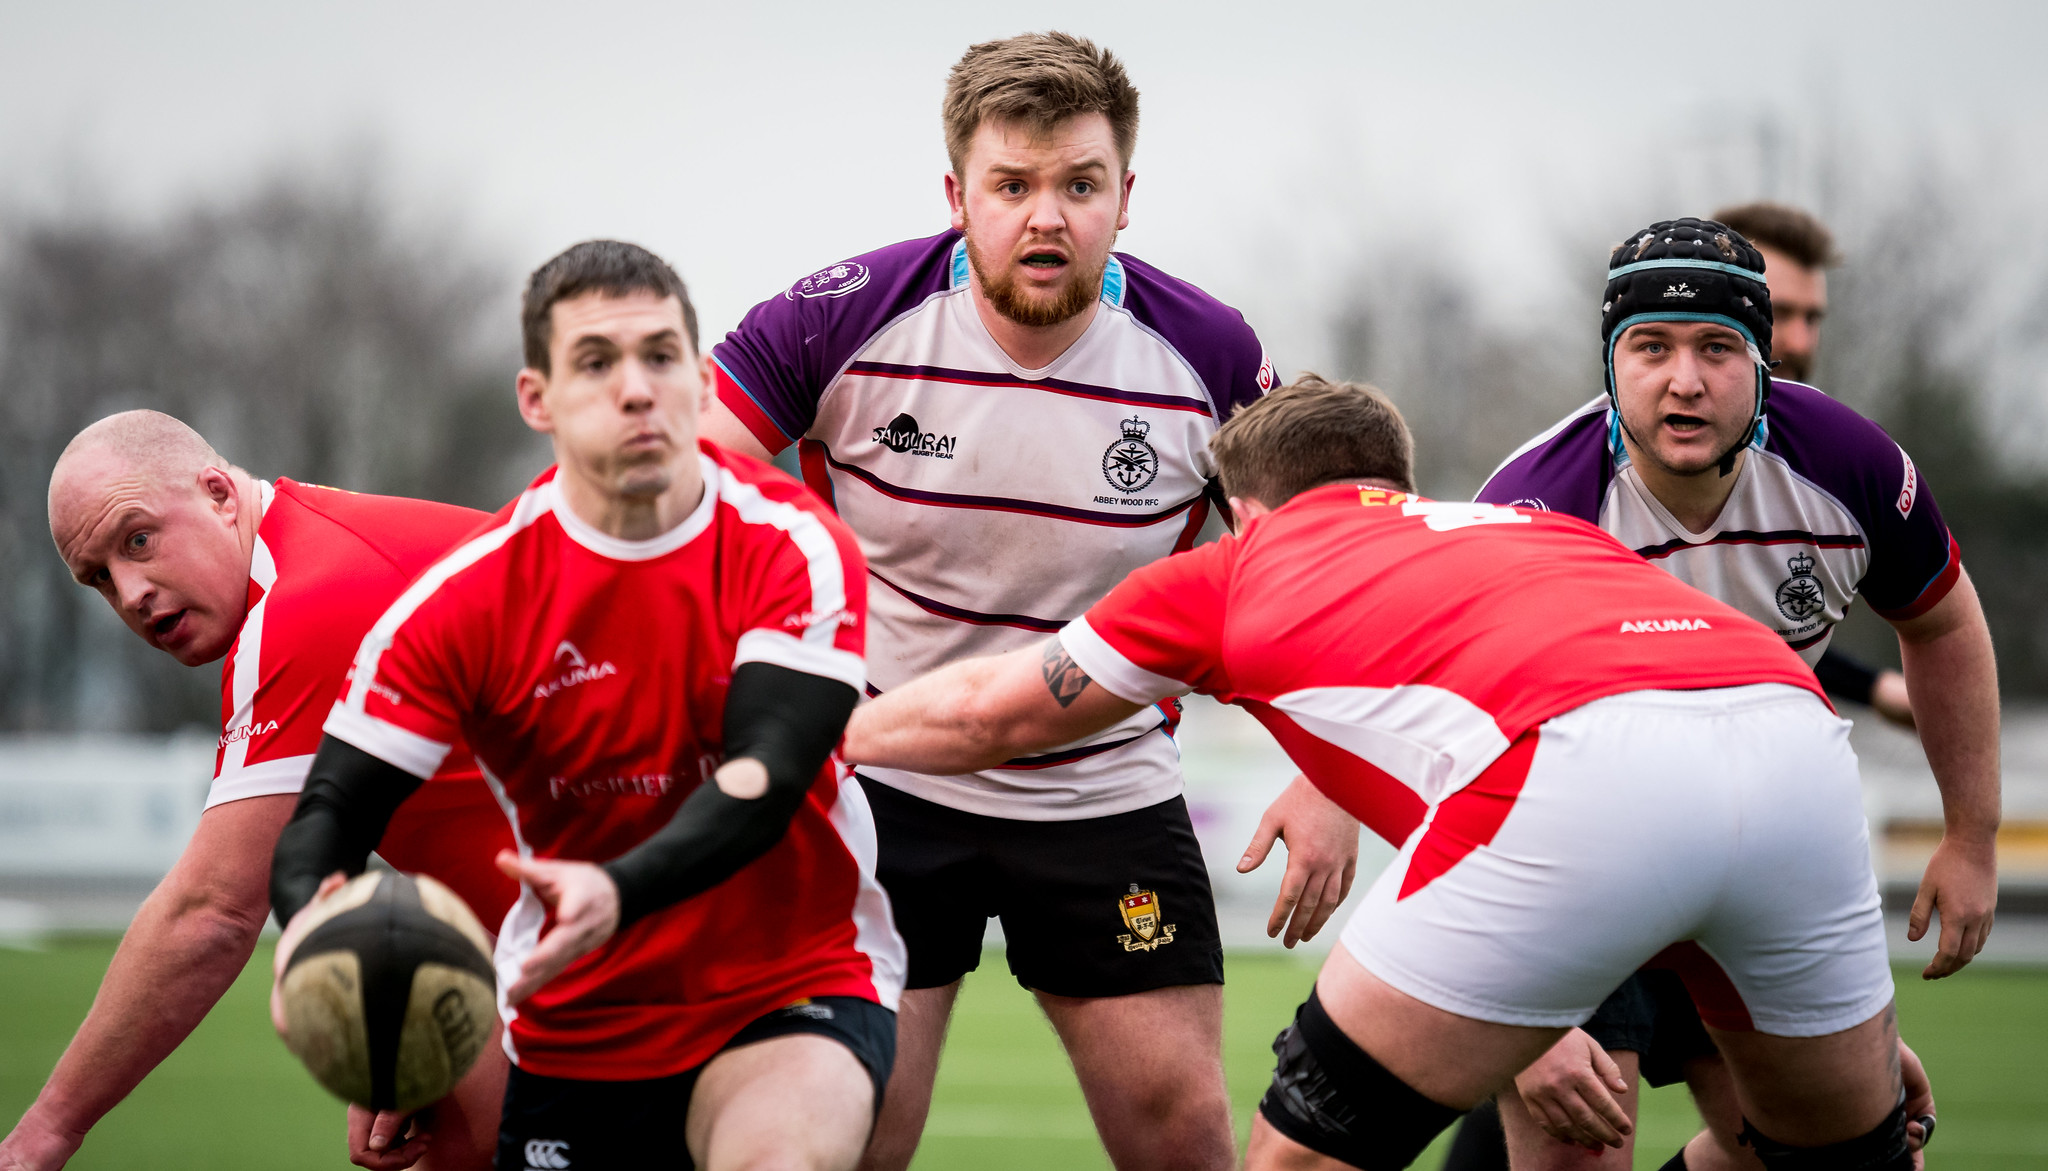 Return to Community Rugby at Unit Level